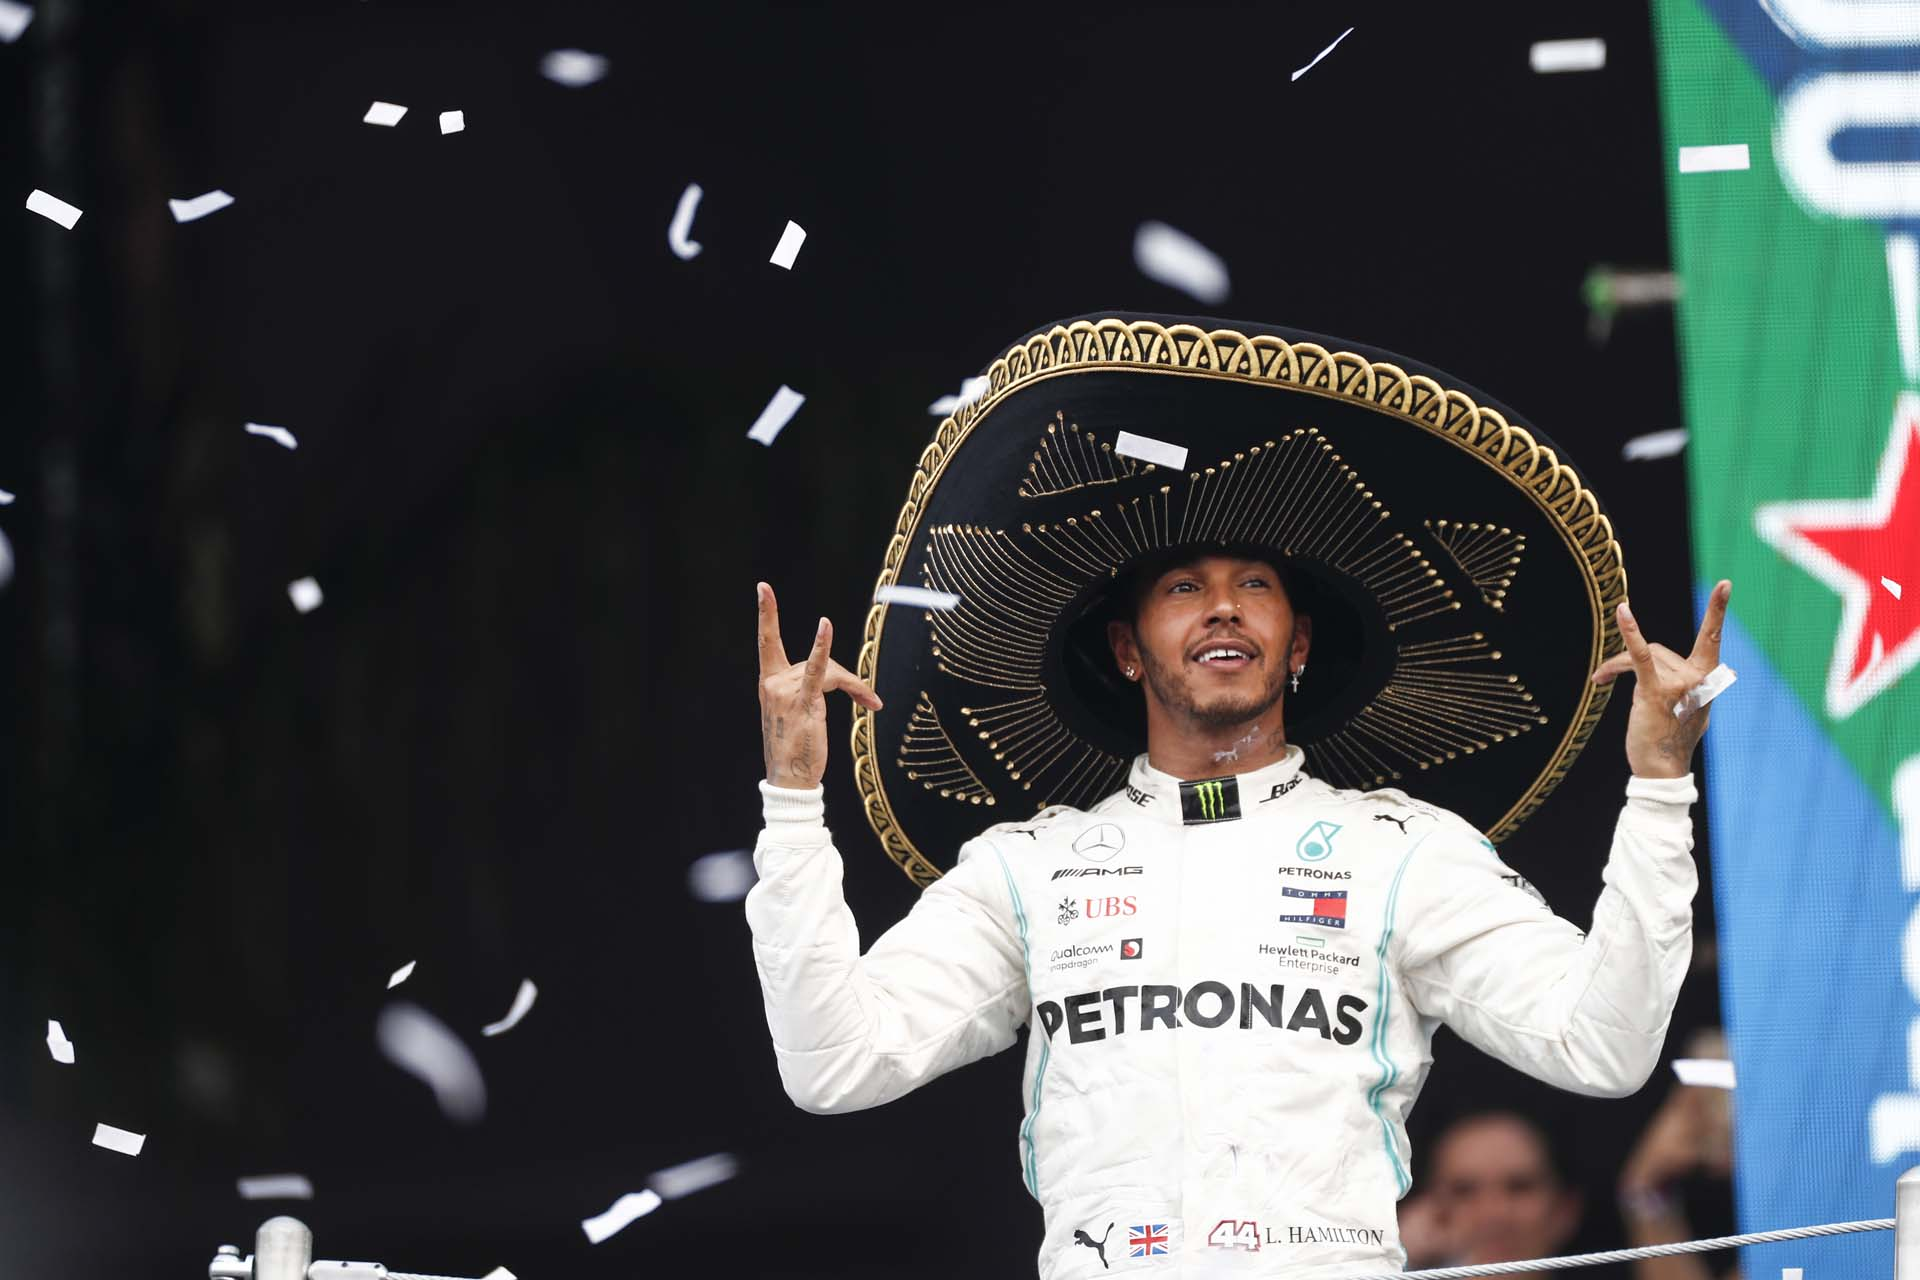 2019 Mexican Grand Prix, Sunday - LAT Images